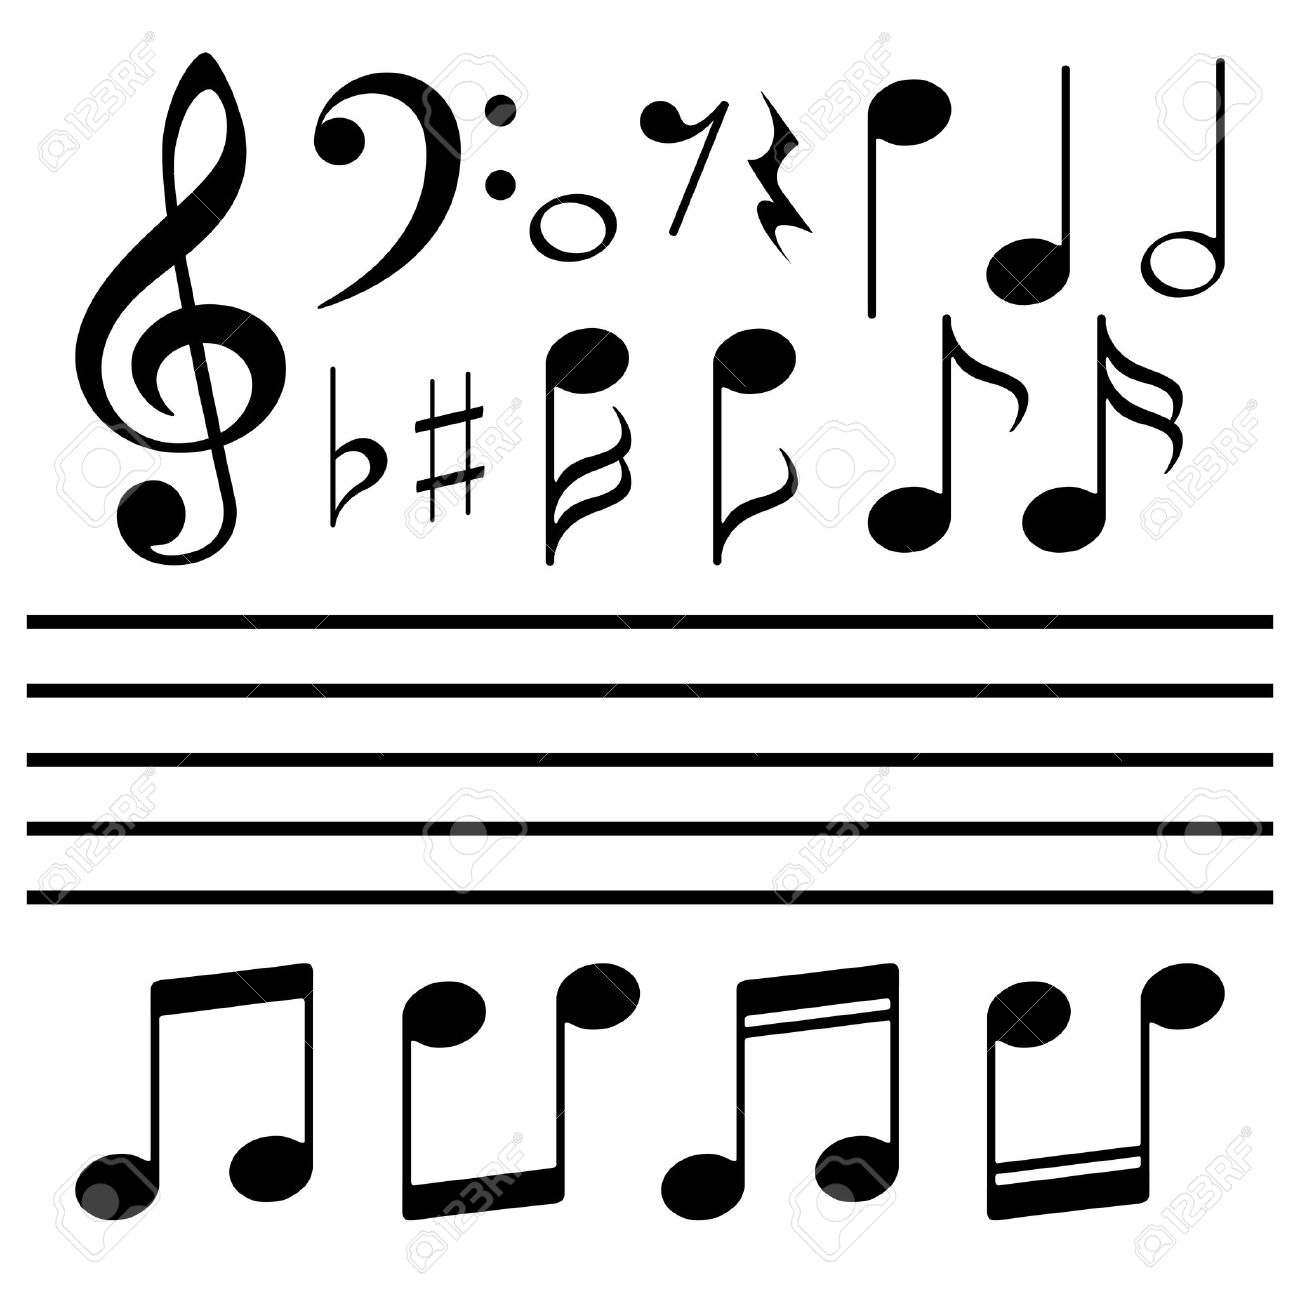 icons set music note royalty free cliparts vectors and stock rh 123rf com Gold Music Notes Music Note Outline